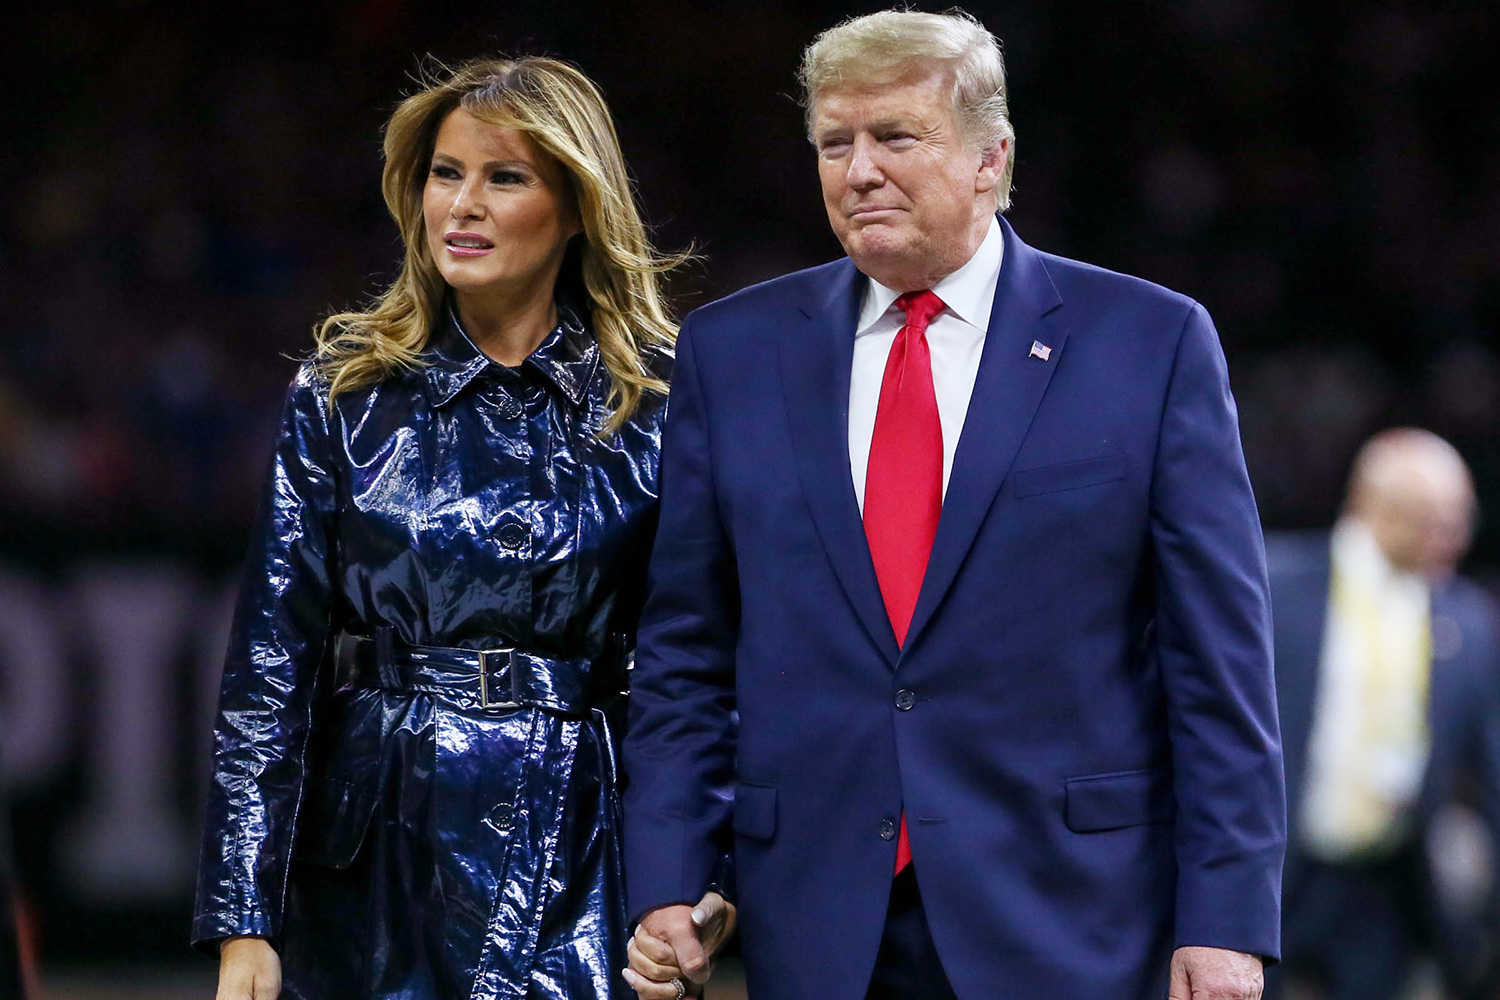 President Donald Trump and his wife Melania Trump take the field before the College Football National Championship between the Clemson Tigers and the LSU Tigers at the Mercedes Benz Superdome in New Orleans, LA NCAA Football CFP National Championship Clemson vs LSU, New Orleans, USA - 13 Jan 2020